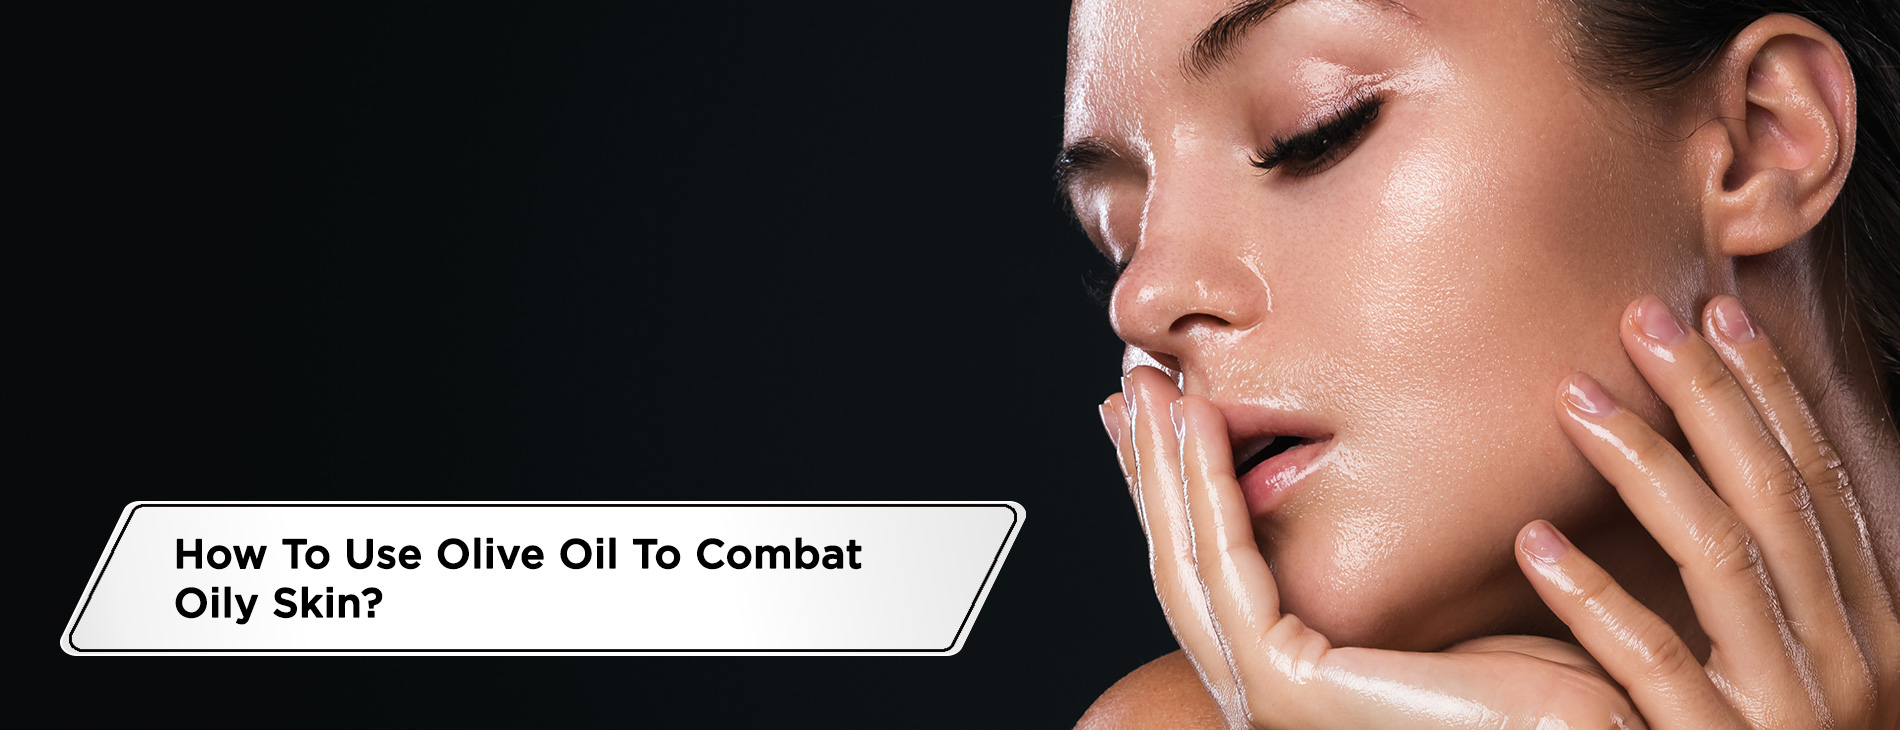 How-To-Use-Olive-Oil-To-Combat-Oily-Skin